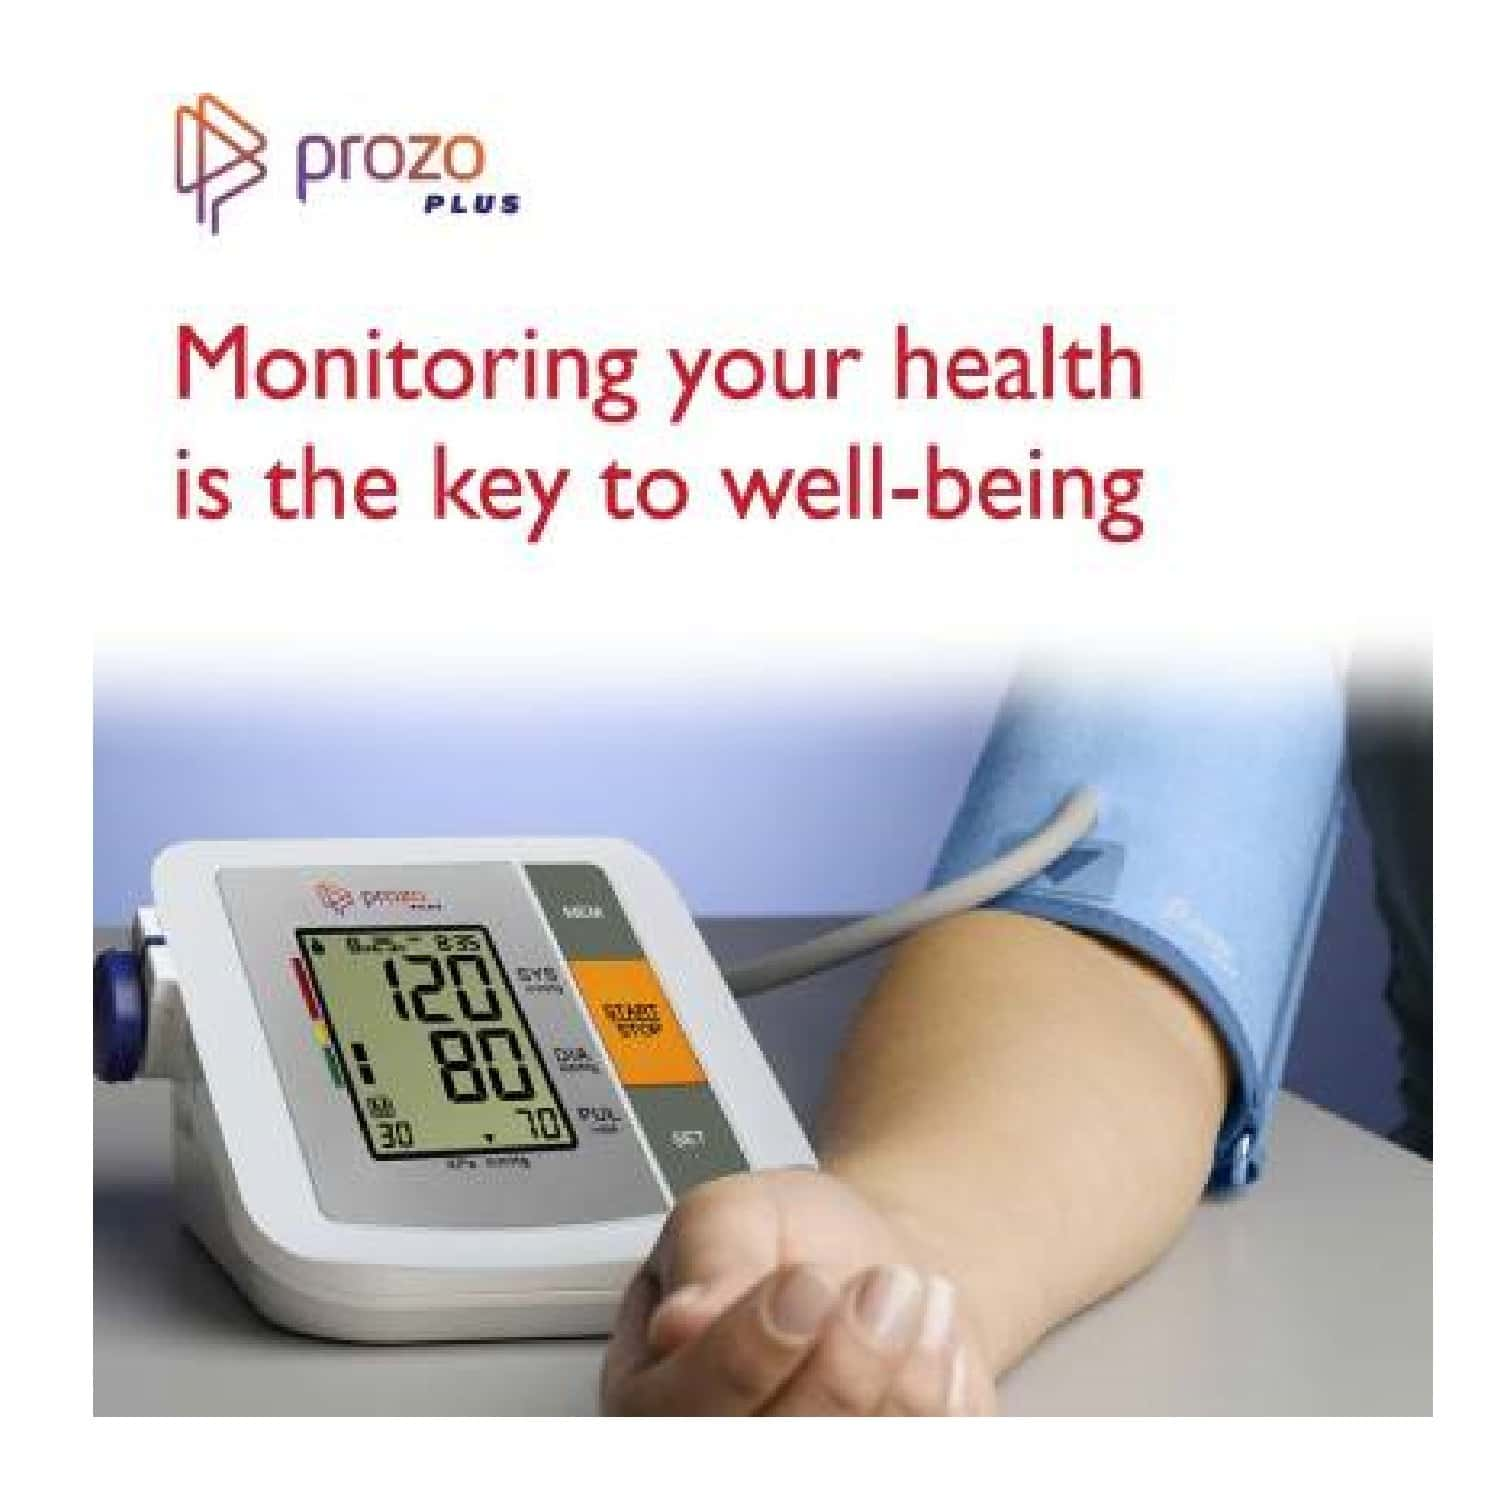 Prozo Plus Fully Automatic Upper Arm Blood Pressure Monitor, Bp Monitor With Premium Quality